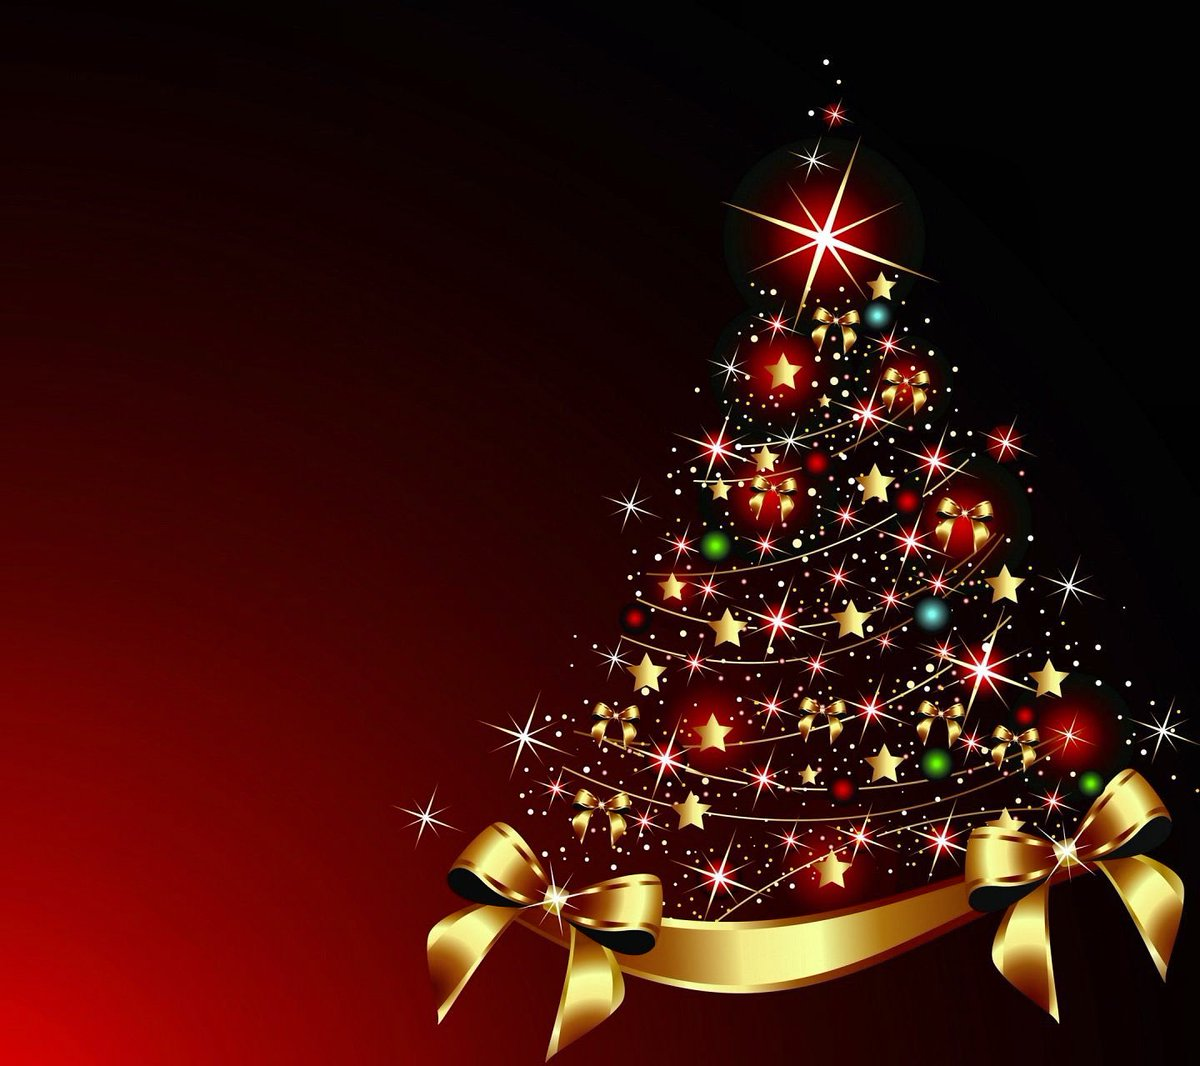 Christmas Greetings from the Team at Venue Search UK.  Wishing you and your family a safe and peaceful Christmas.  We look forward to working with you in 2021.     Events@venuesearch.co.uk  #venuesearchuk #WeMakeEvents #eventprofs #Christmas